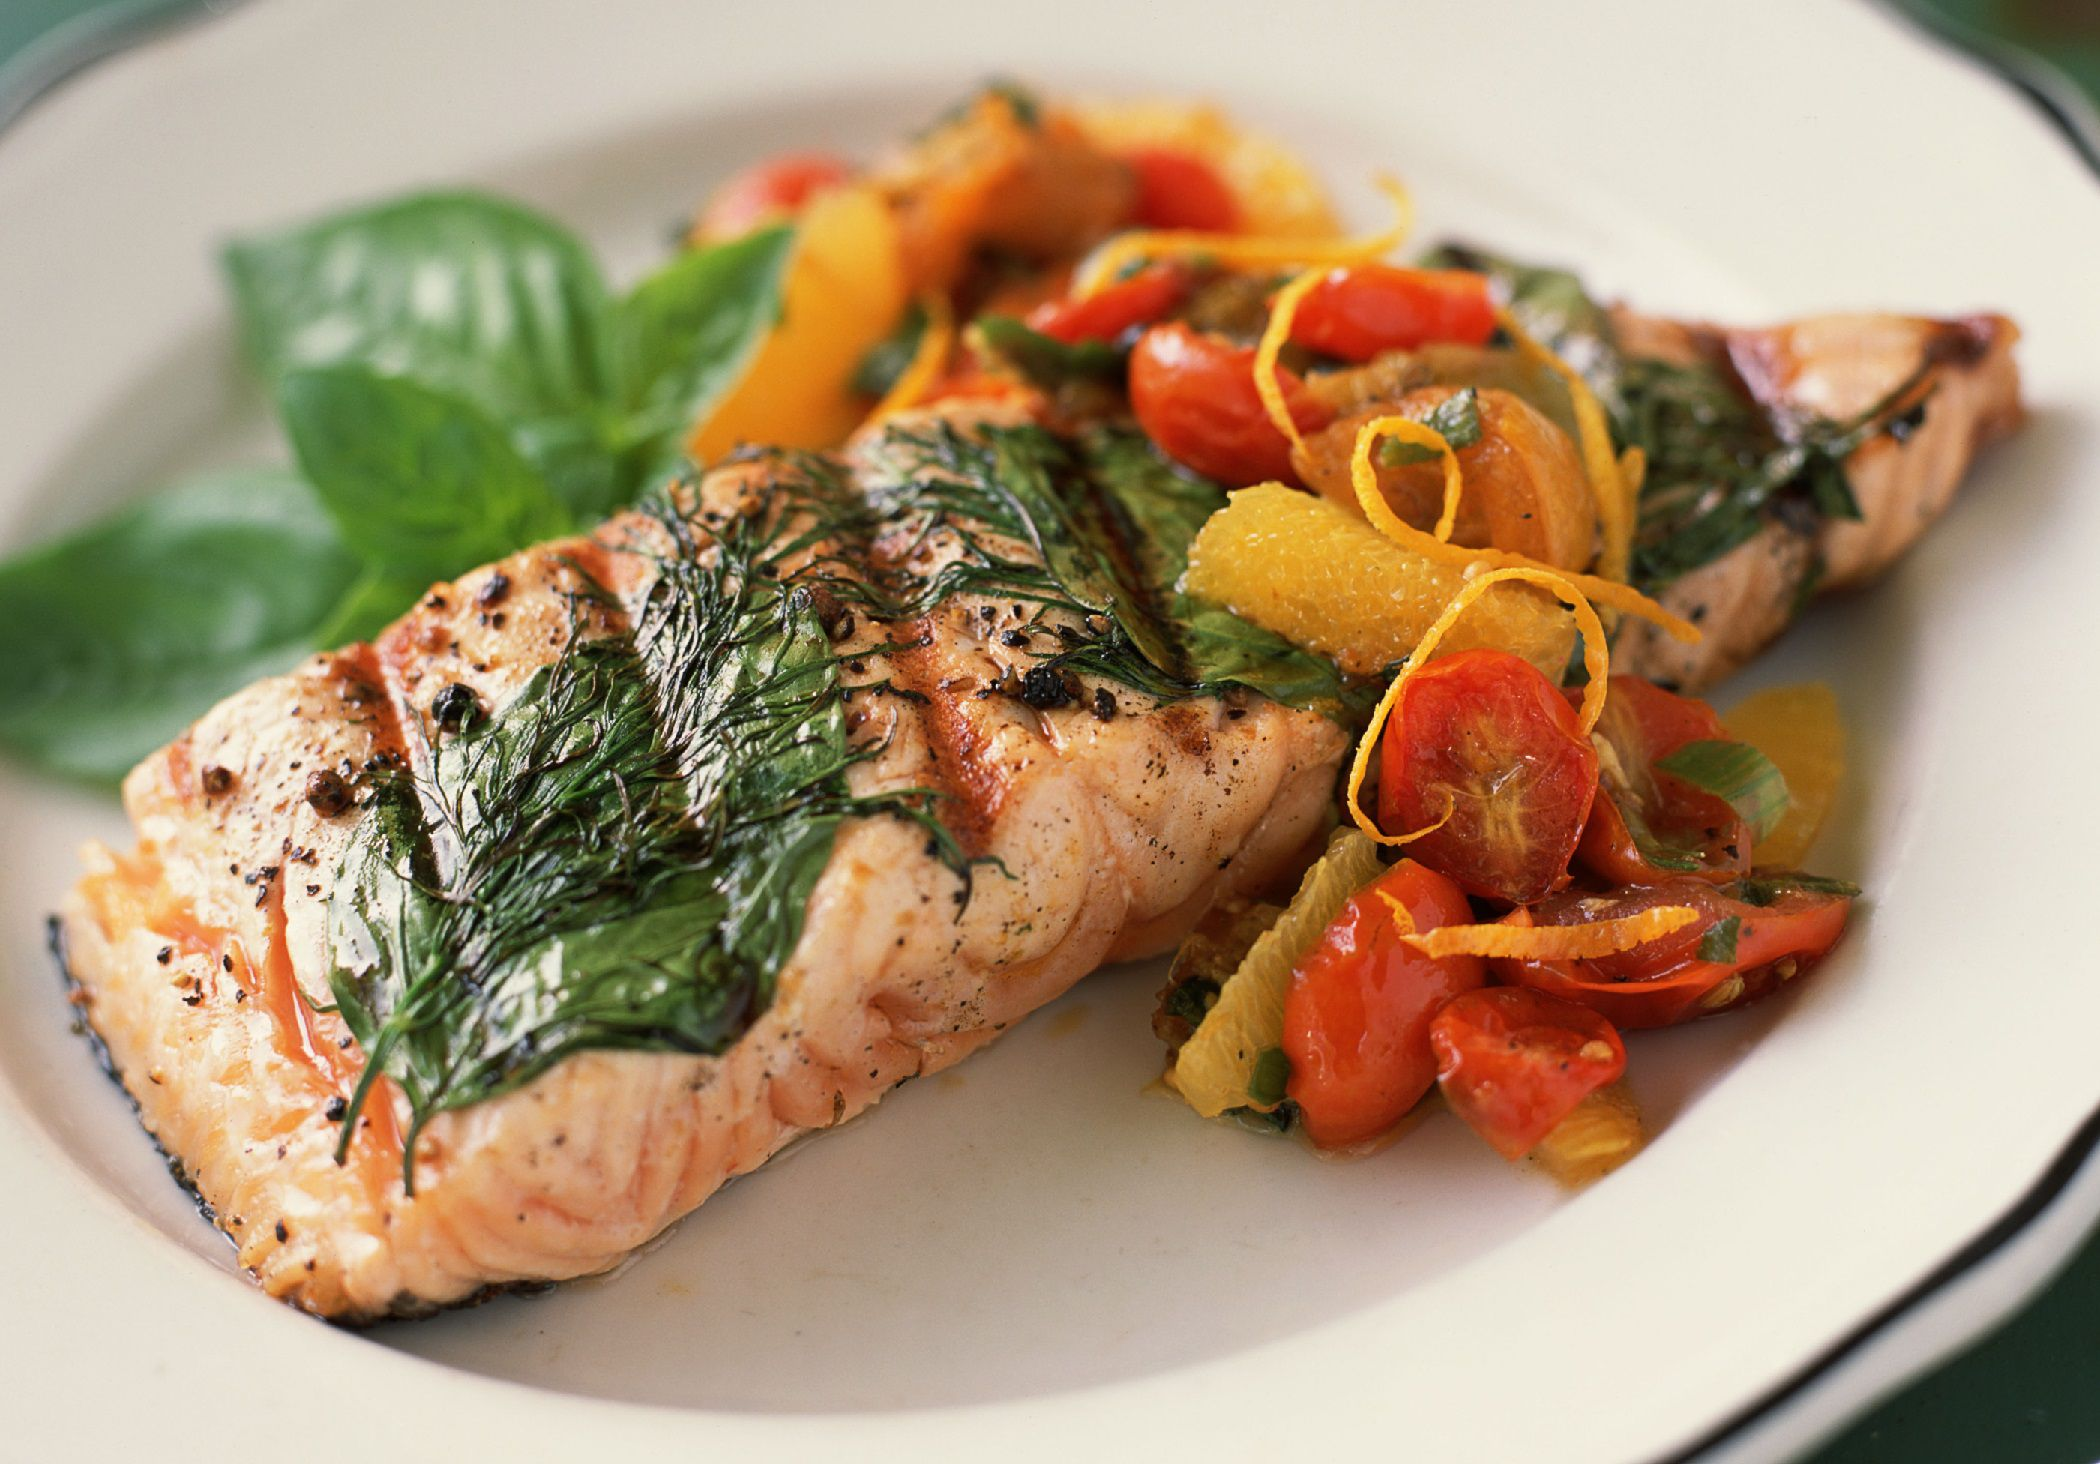 Top 10 low carb fish and seafood recipes for Low carb fish recipes